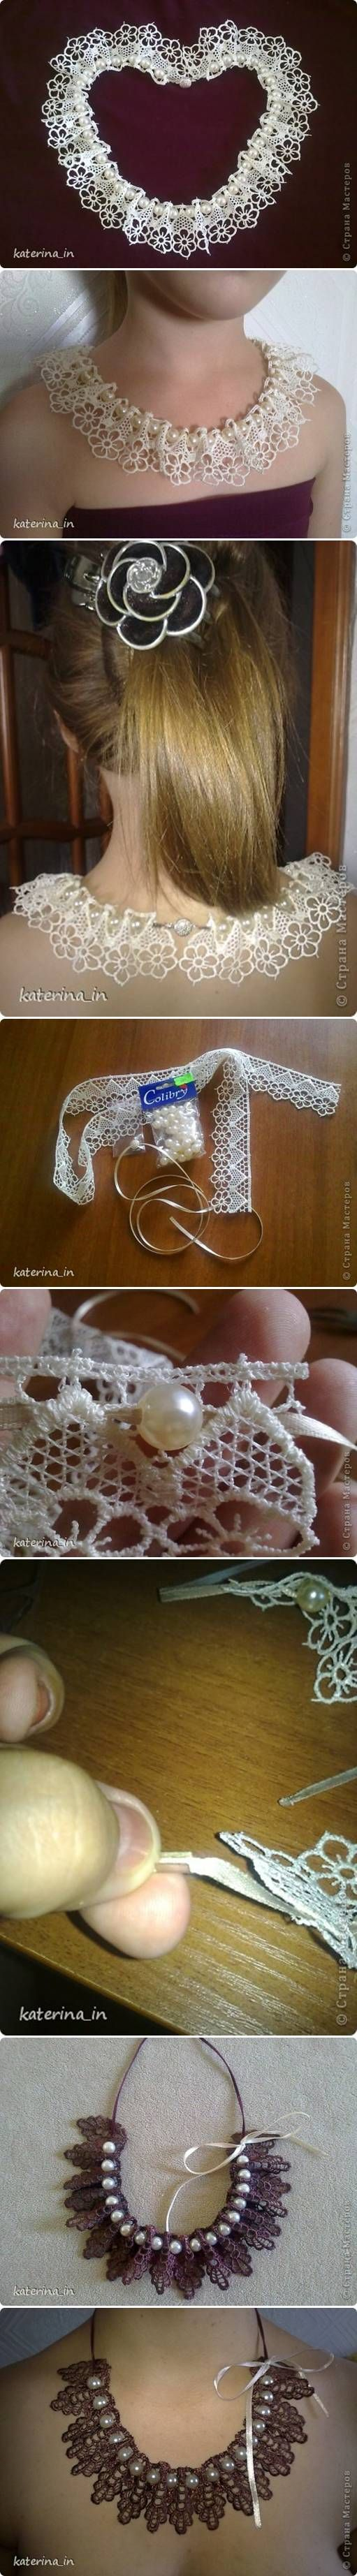 DIY Sew Lace Beads Collar